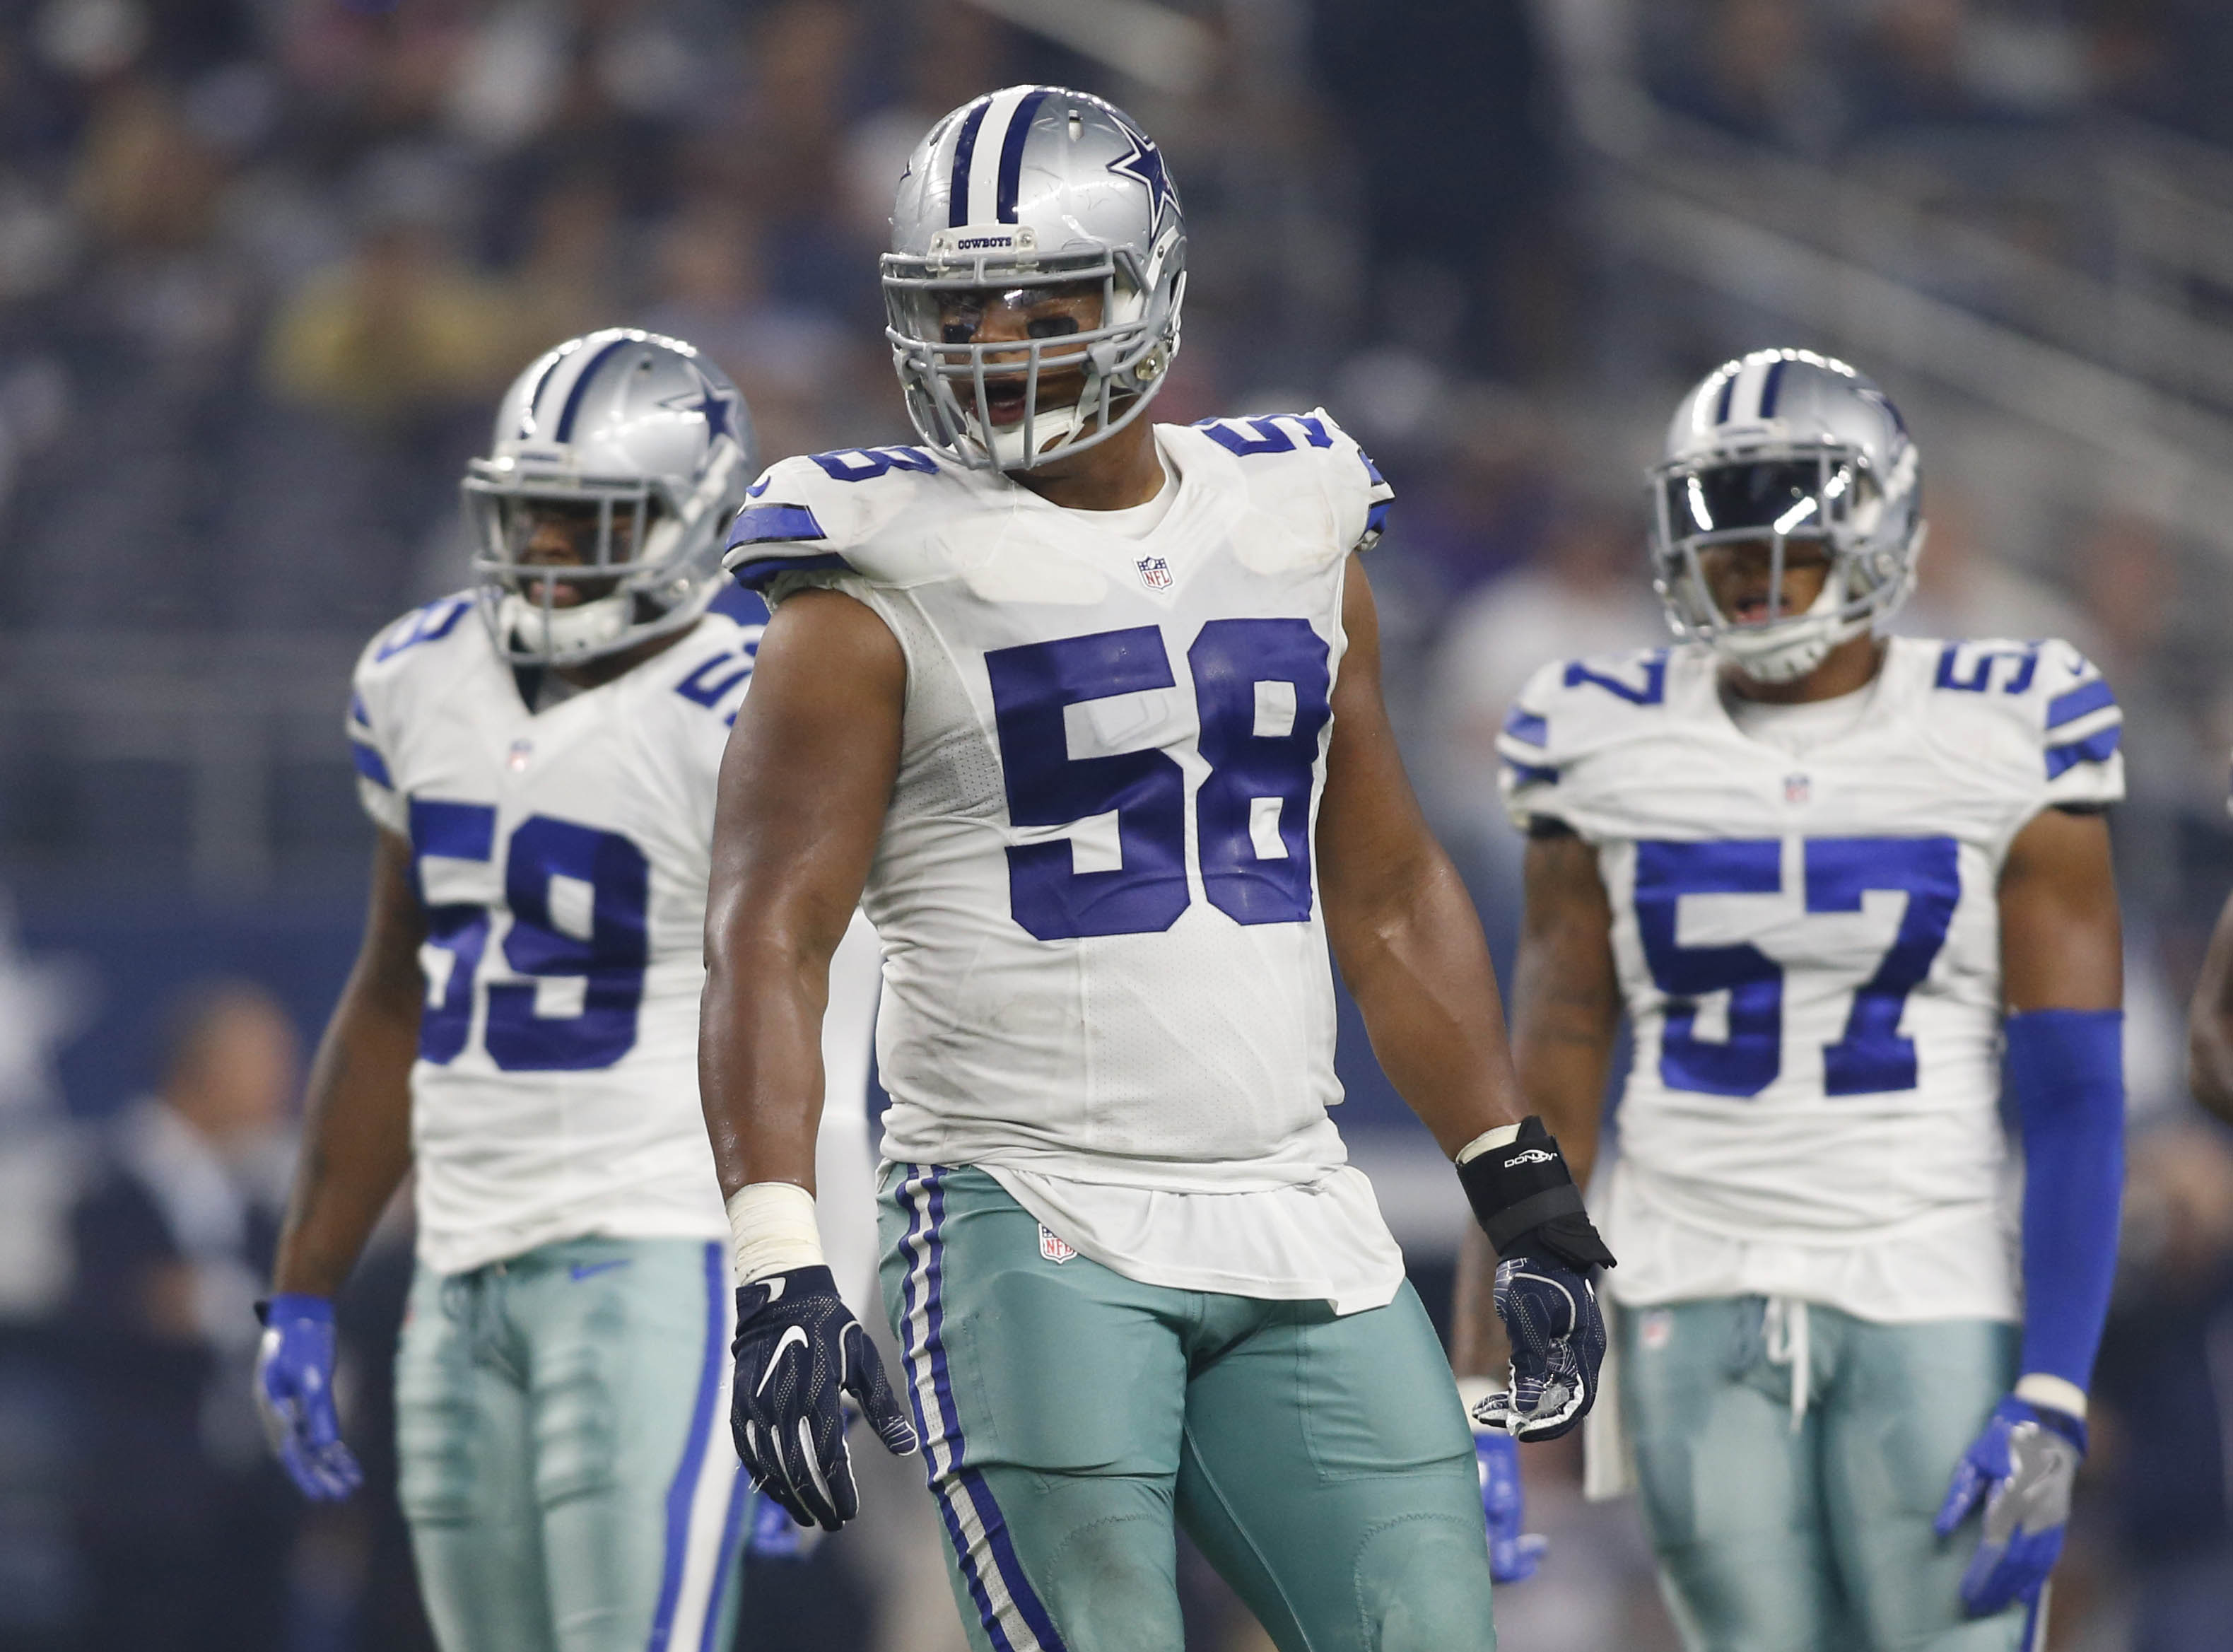 9489119-nfl-preseason-miami-dolphins-at-dallas-cowboys